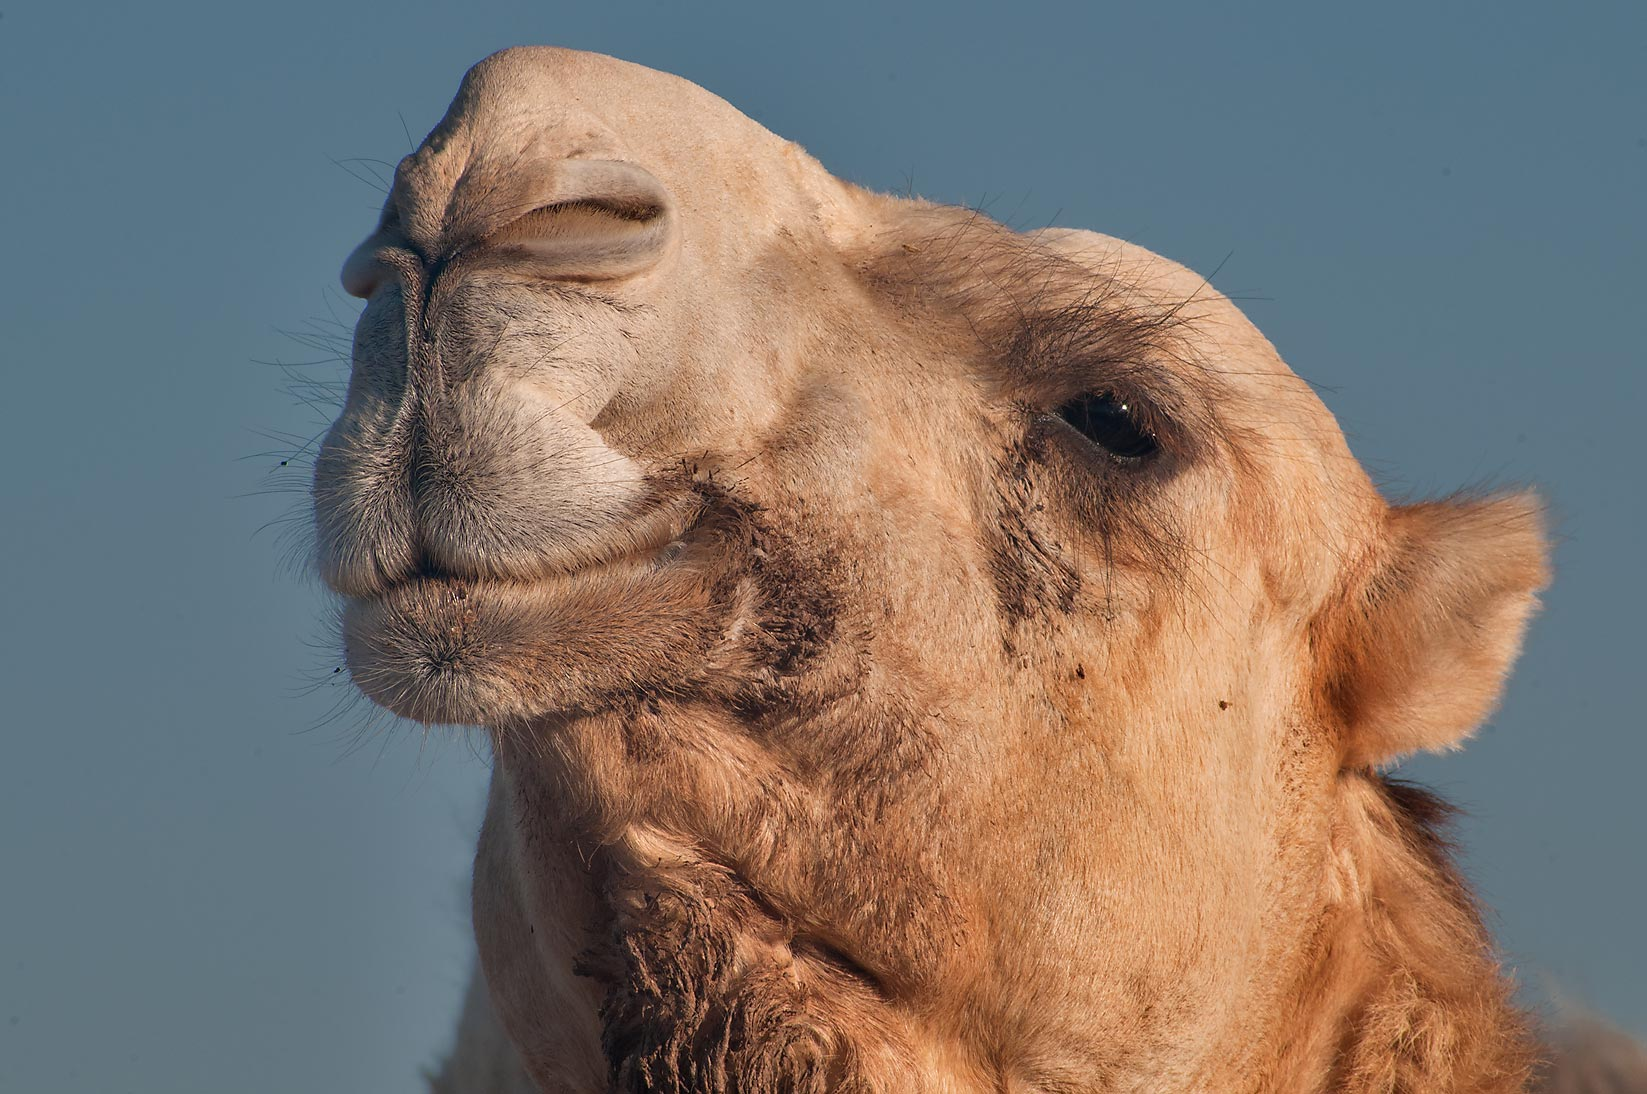 Bossy camel in Animal Market, Wholesale Markets area. Doha, Qatar